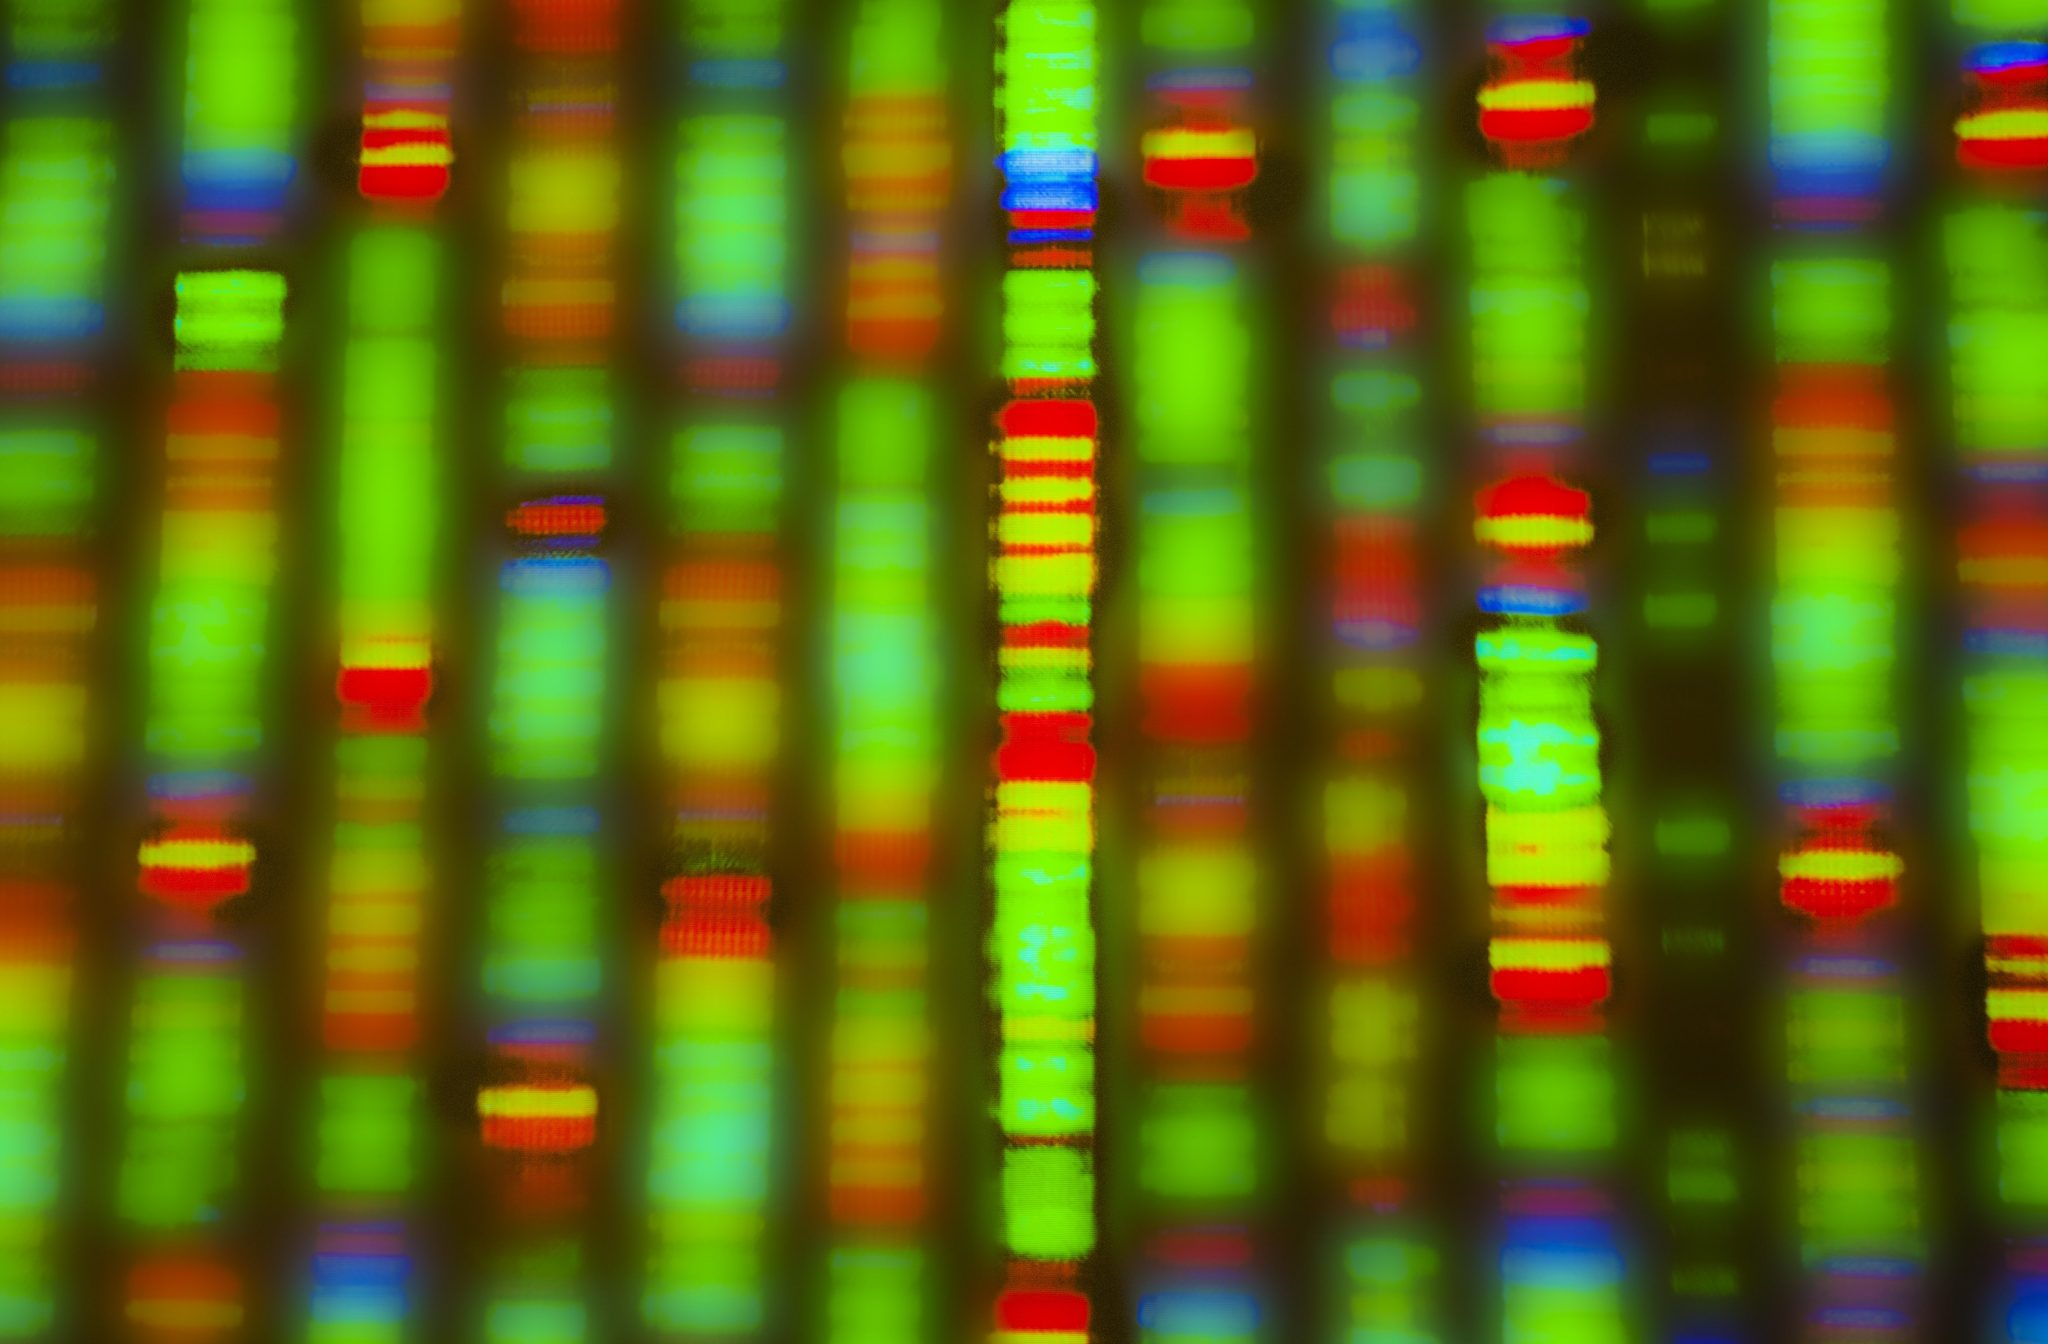 Encrypgen nurtures the community of researchers, scientists and doctors in the field of genomics